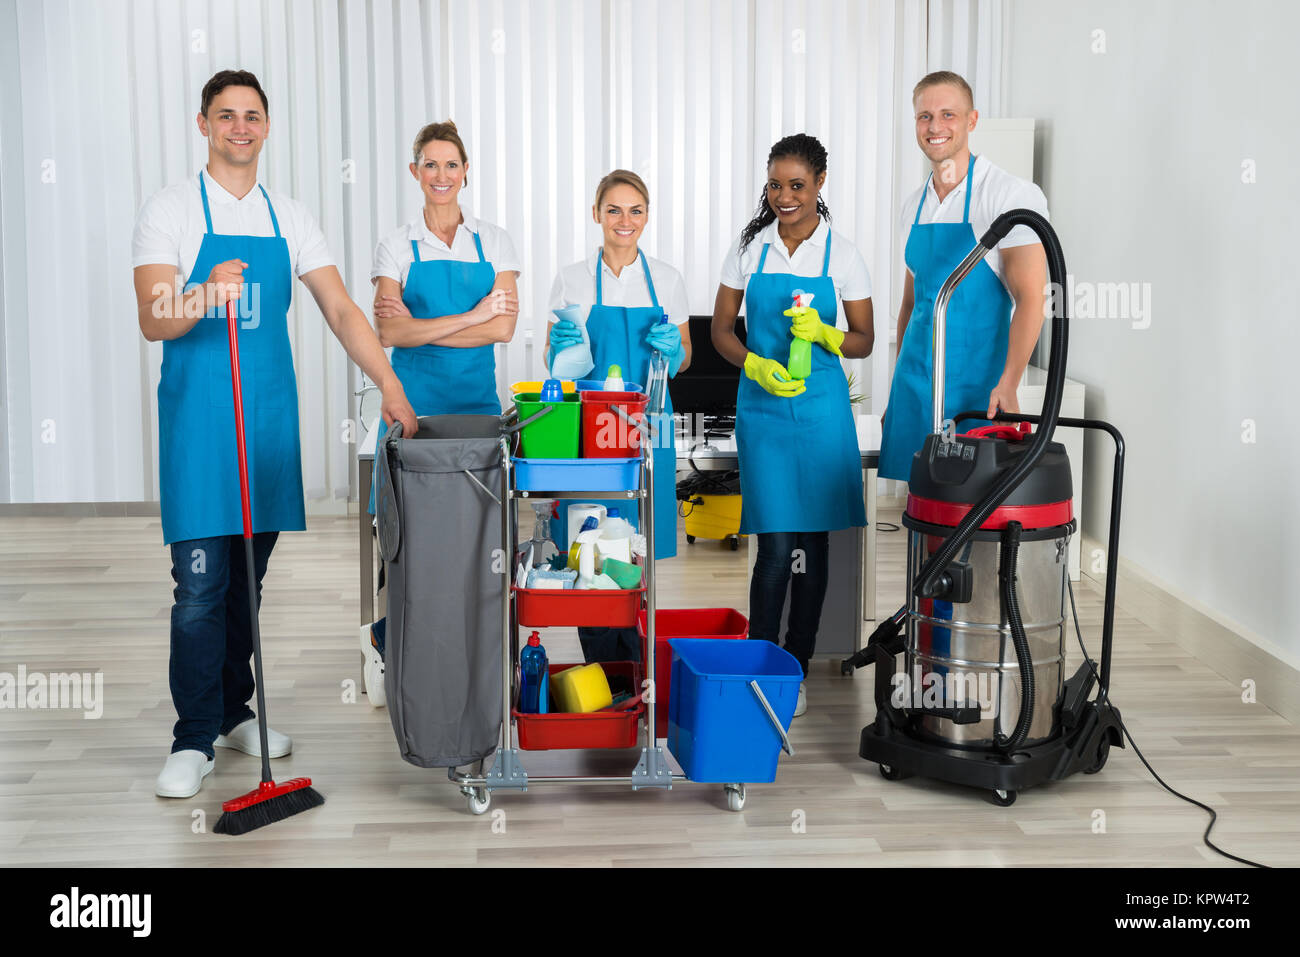 Cleaners With Cleaning Equipments In Office - Stock Image